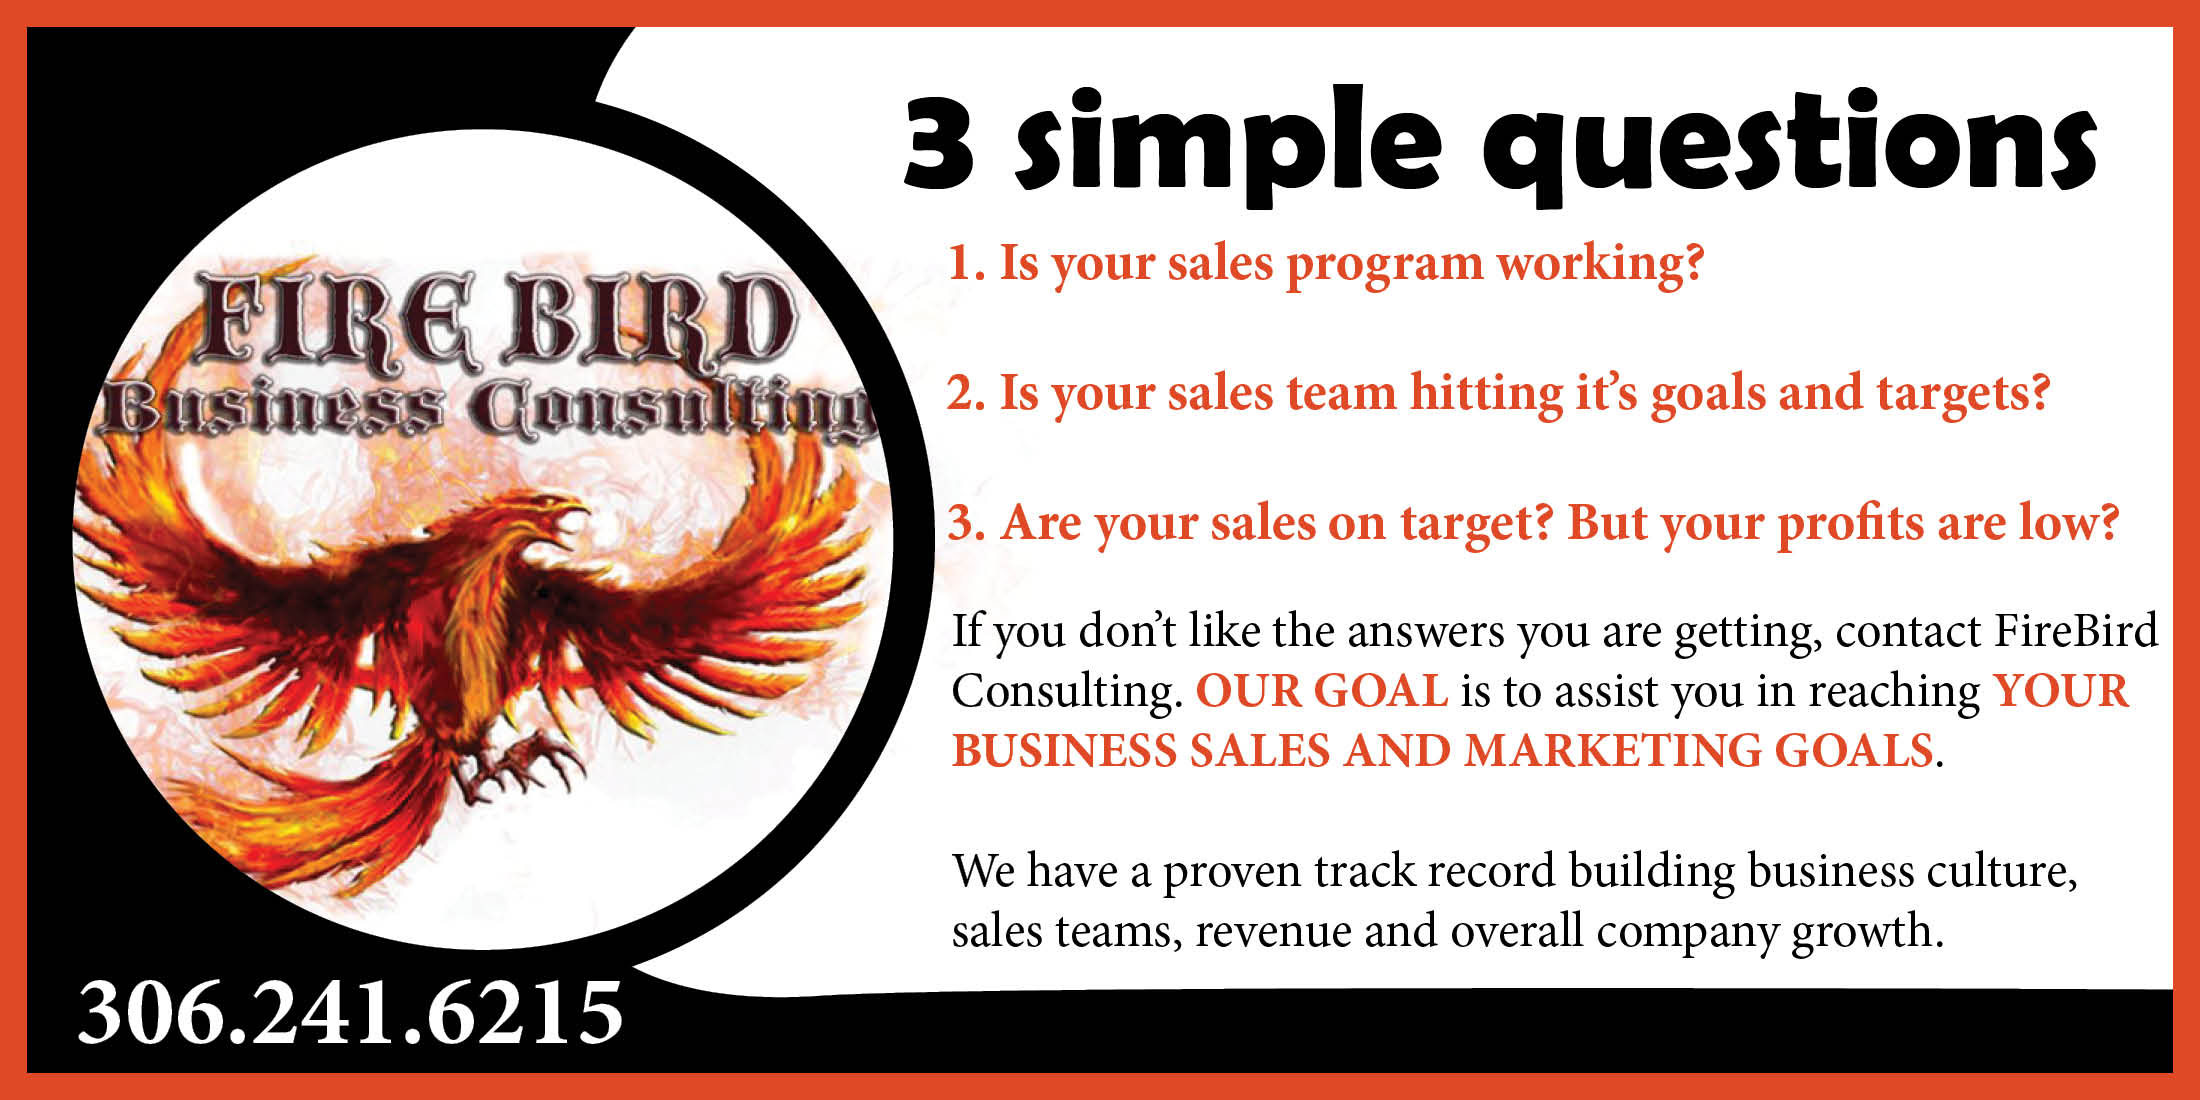 3 simple questions by roger grona president firebird take your company to the next level